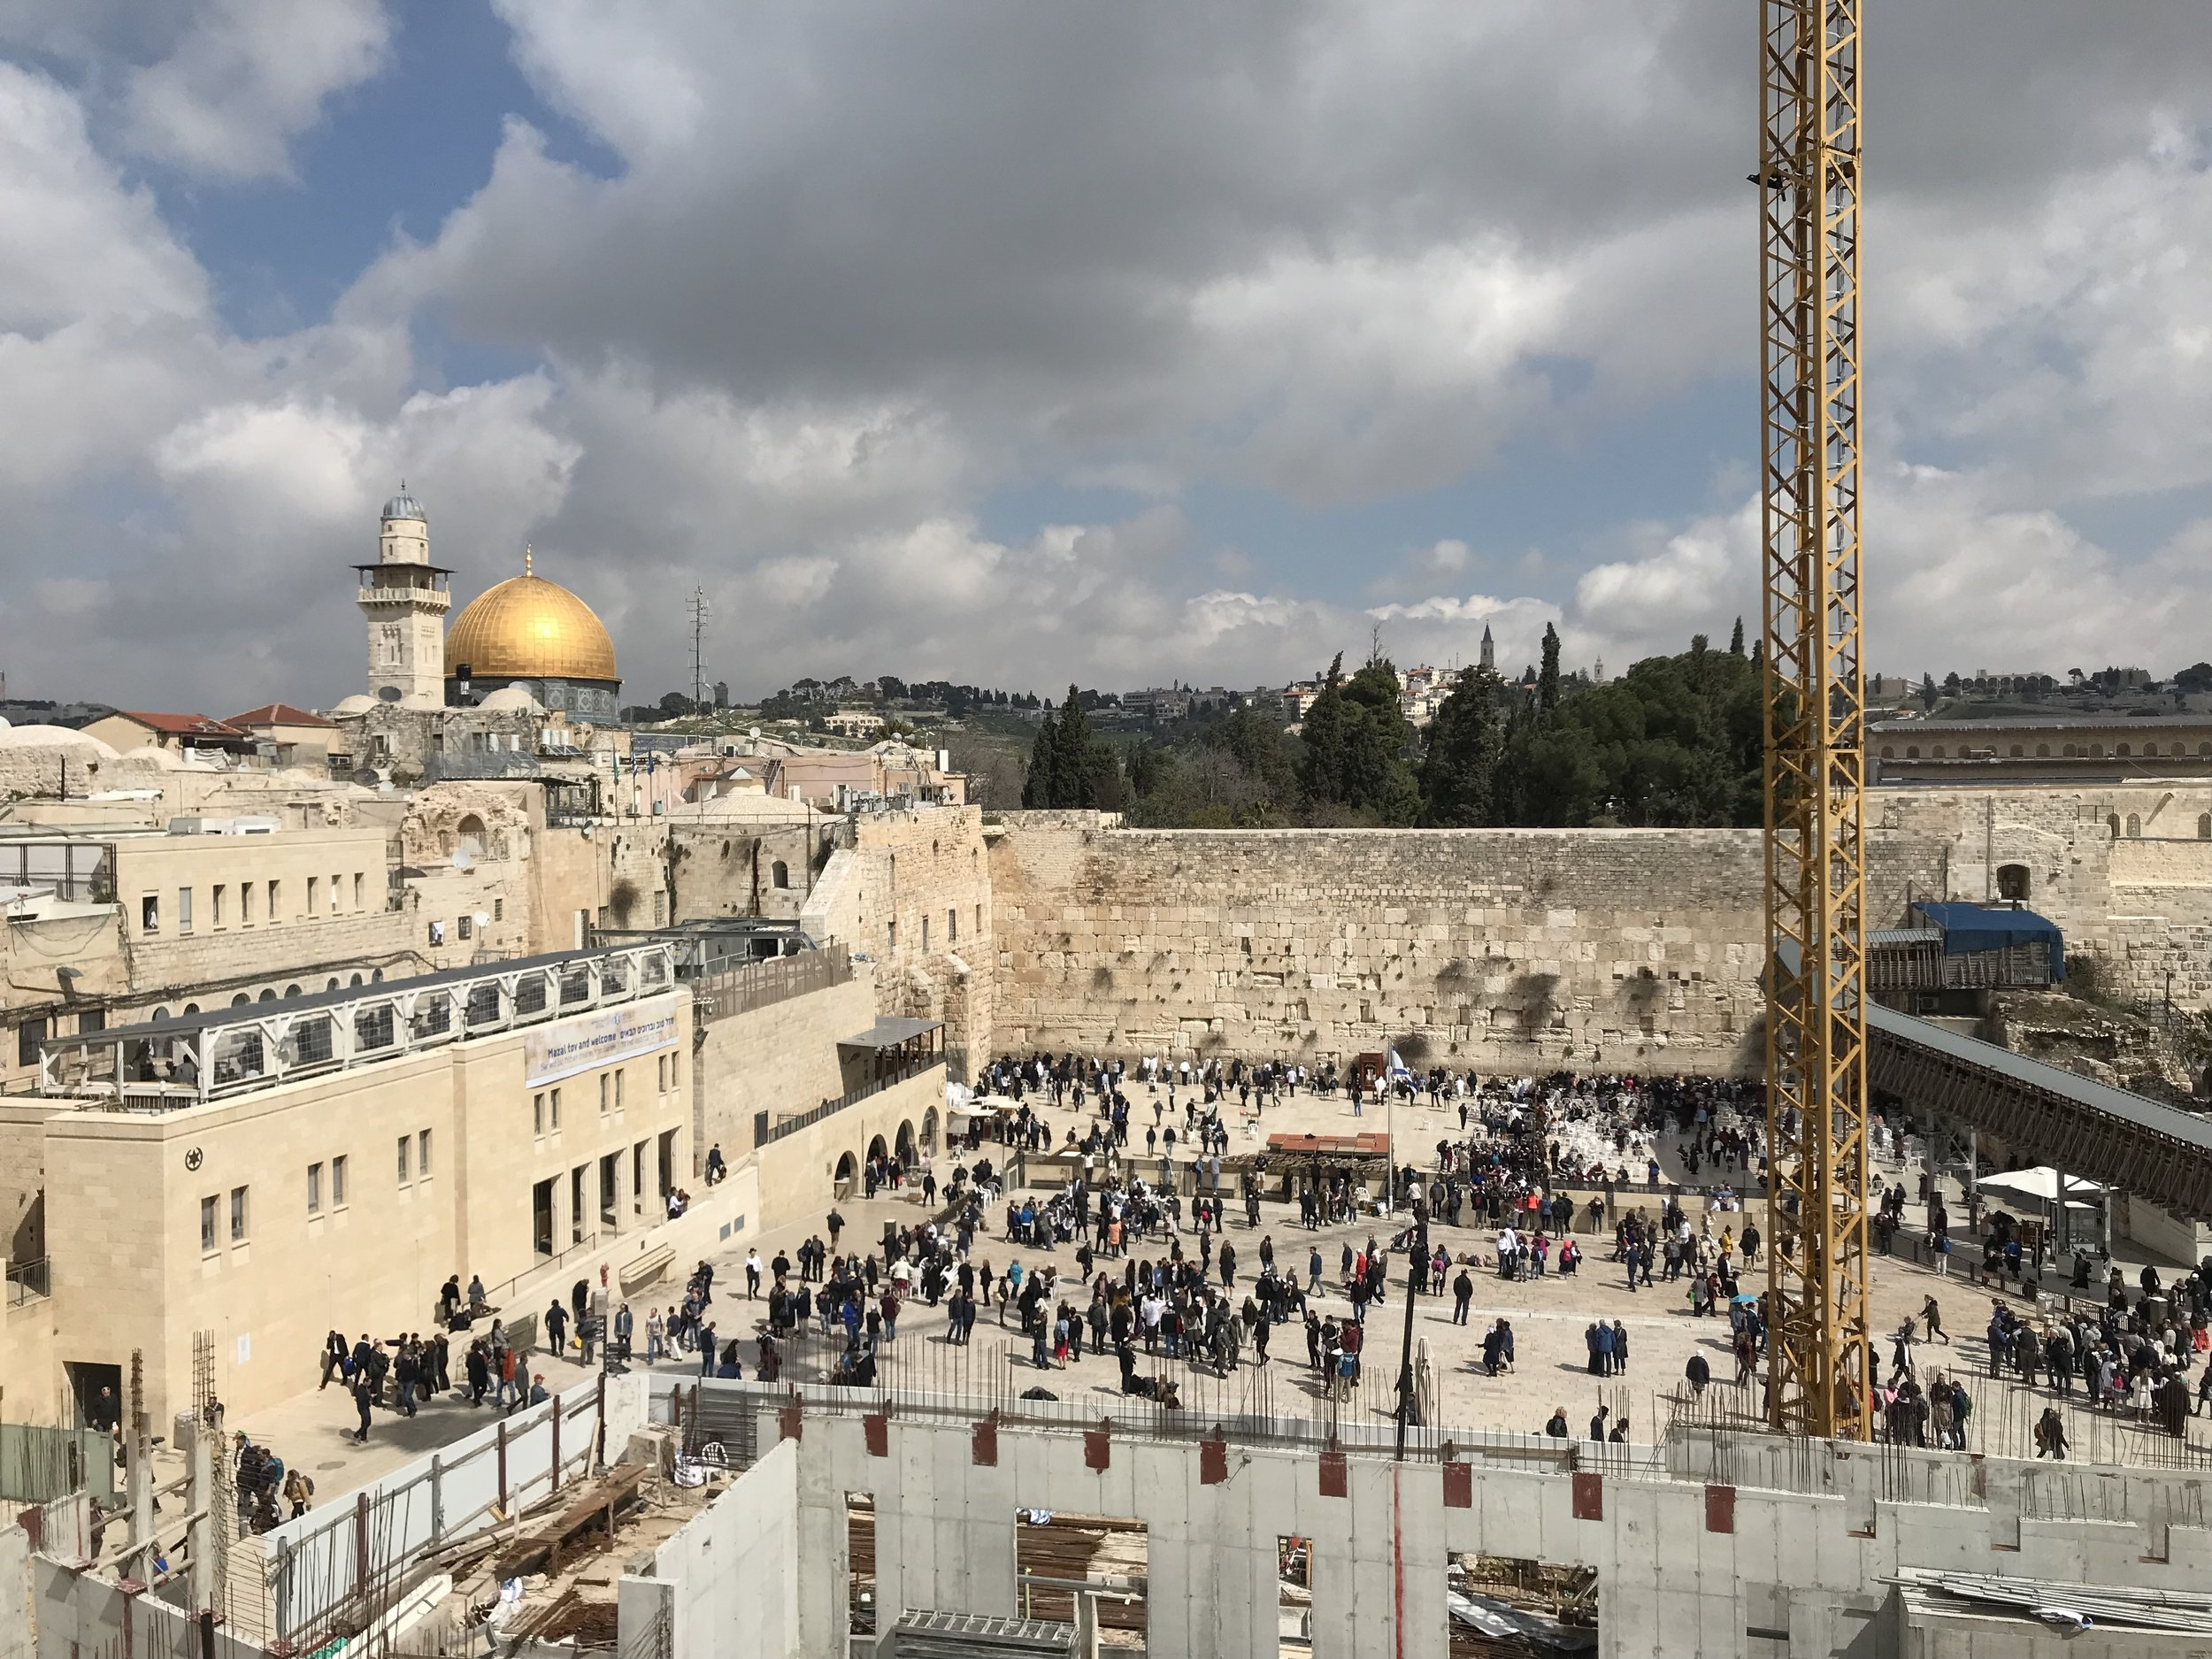 While in Israel for spring break, I was fortunate enough to be able to visit one of the most famous religious sites in the world: The Western Wall in Jerusalem. It is considered one of the holiest places in the world for Jewish people to pray and witnessing the multitude of people praying at its base was an unforgettable sight. In addition to the beauty of the sight, I was able to experience some cultural nuances such as some of those praying at the base of the wall walked backwards to exit the prayer space, not turning their backs on the wall. It is a breathtaking site with the golden Dome of the Rock, an Islamic shrine in the Old City of Jerusalem. The vantage point that this photo was taken from was included in a two-hour walking tour I did through the Old City and its four quarters: the Christian, Jewish, Muslim, and Armenian Quarters. Photo credit: Tenney, 2019